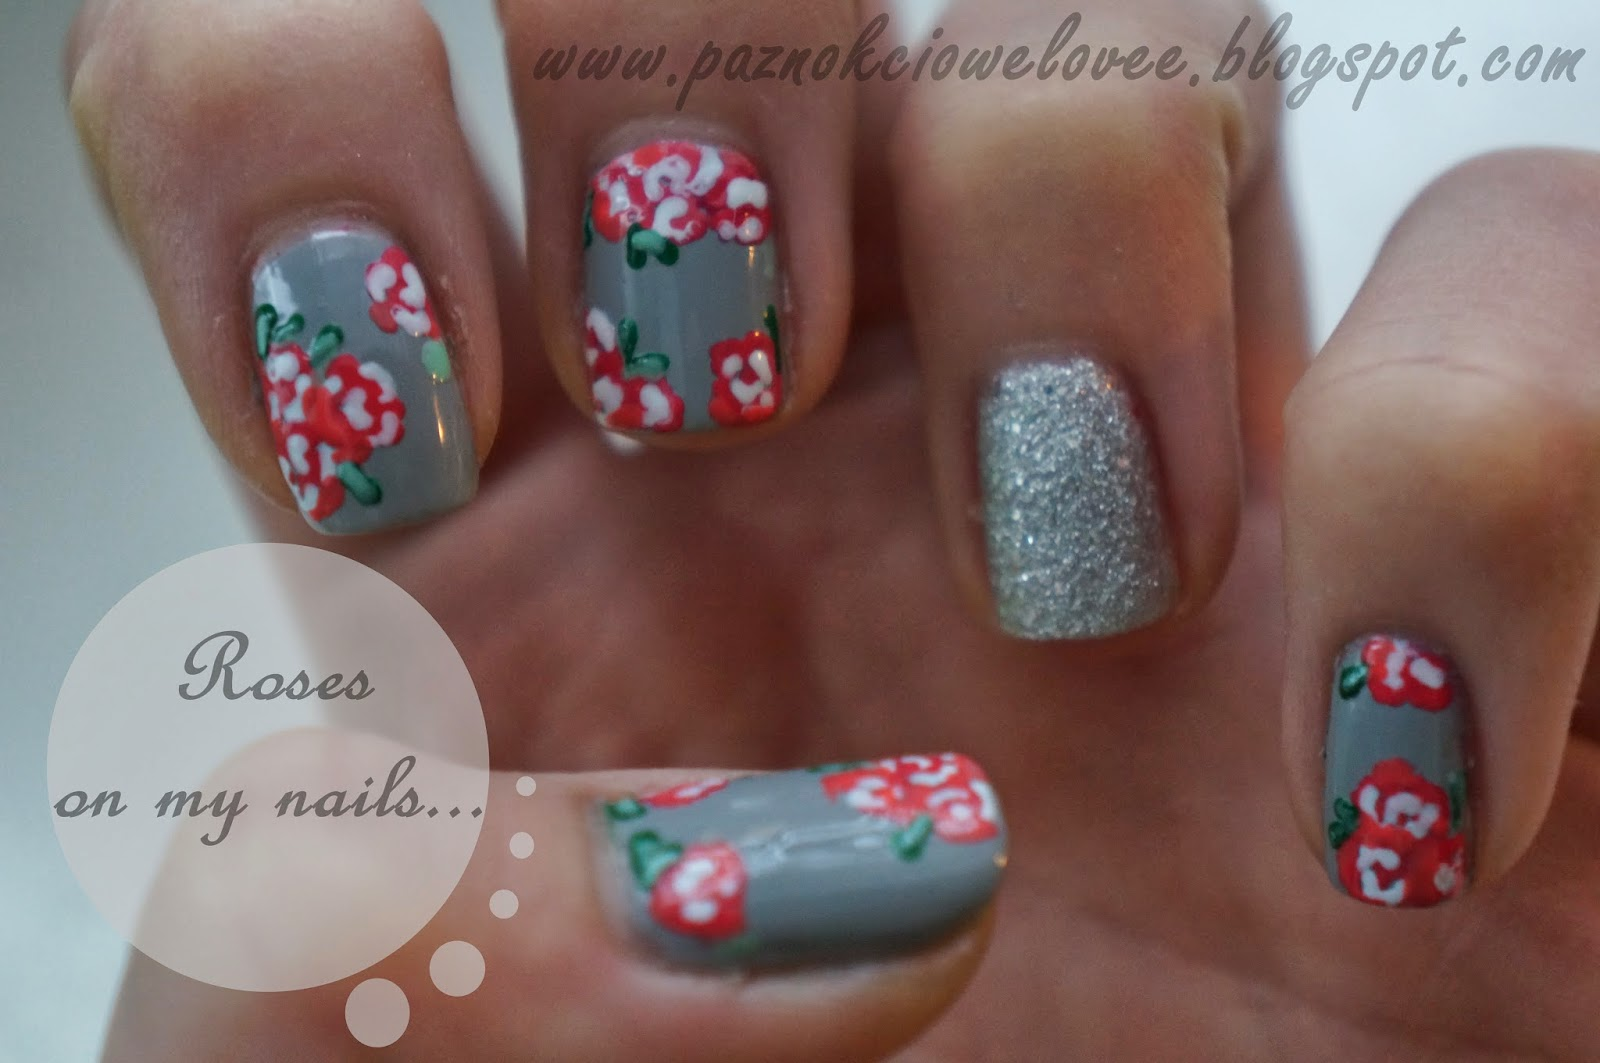 Roses on my nails